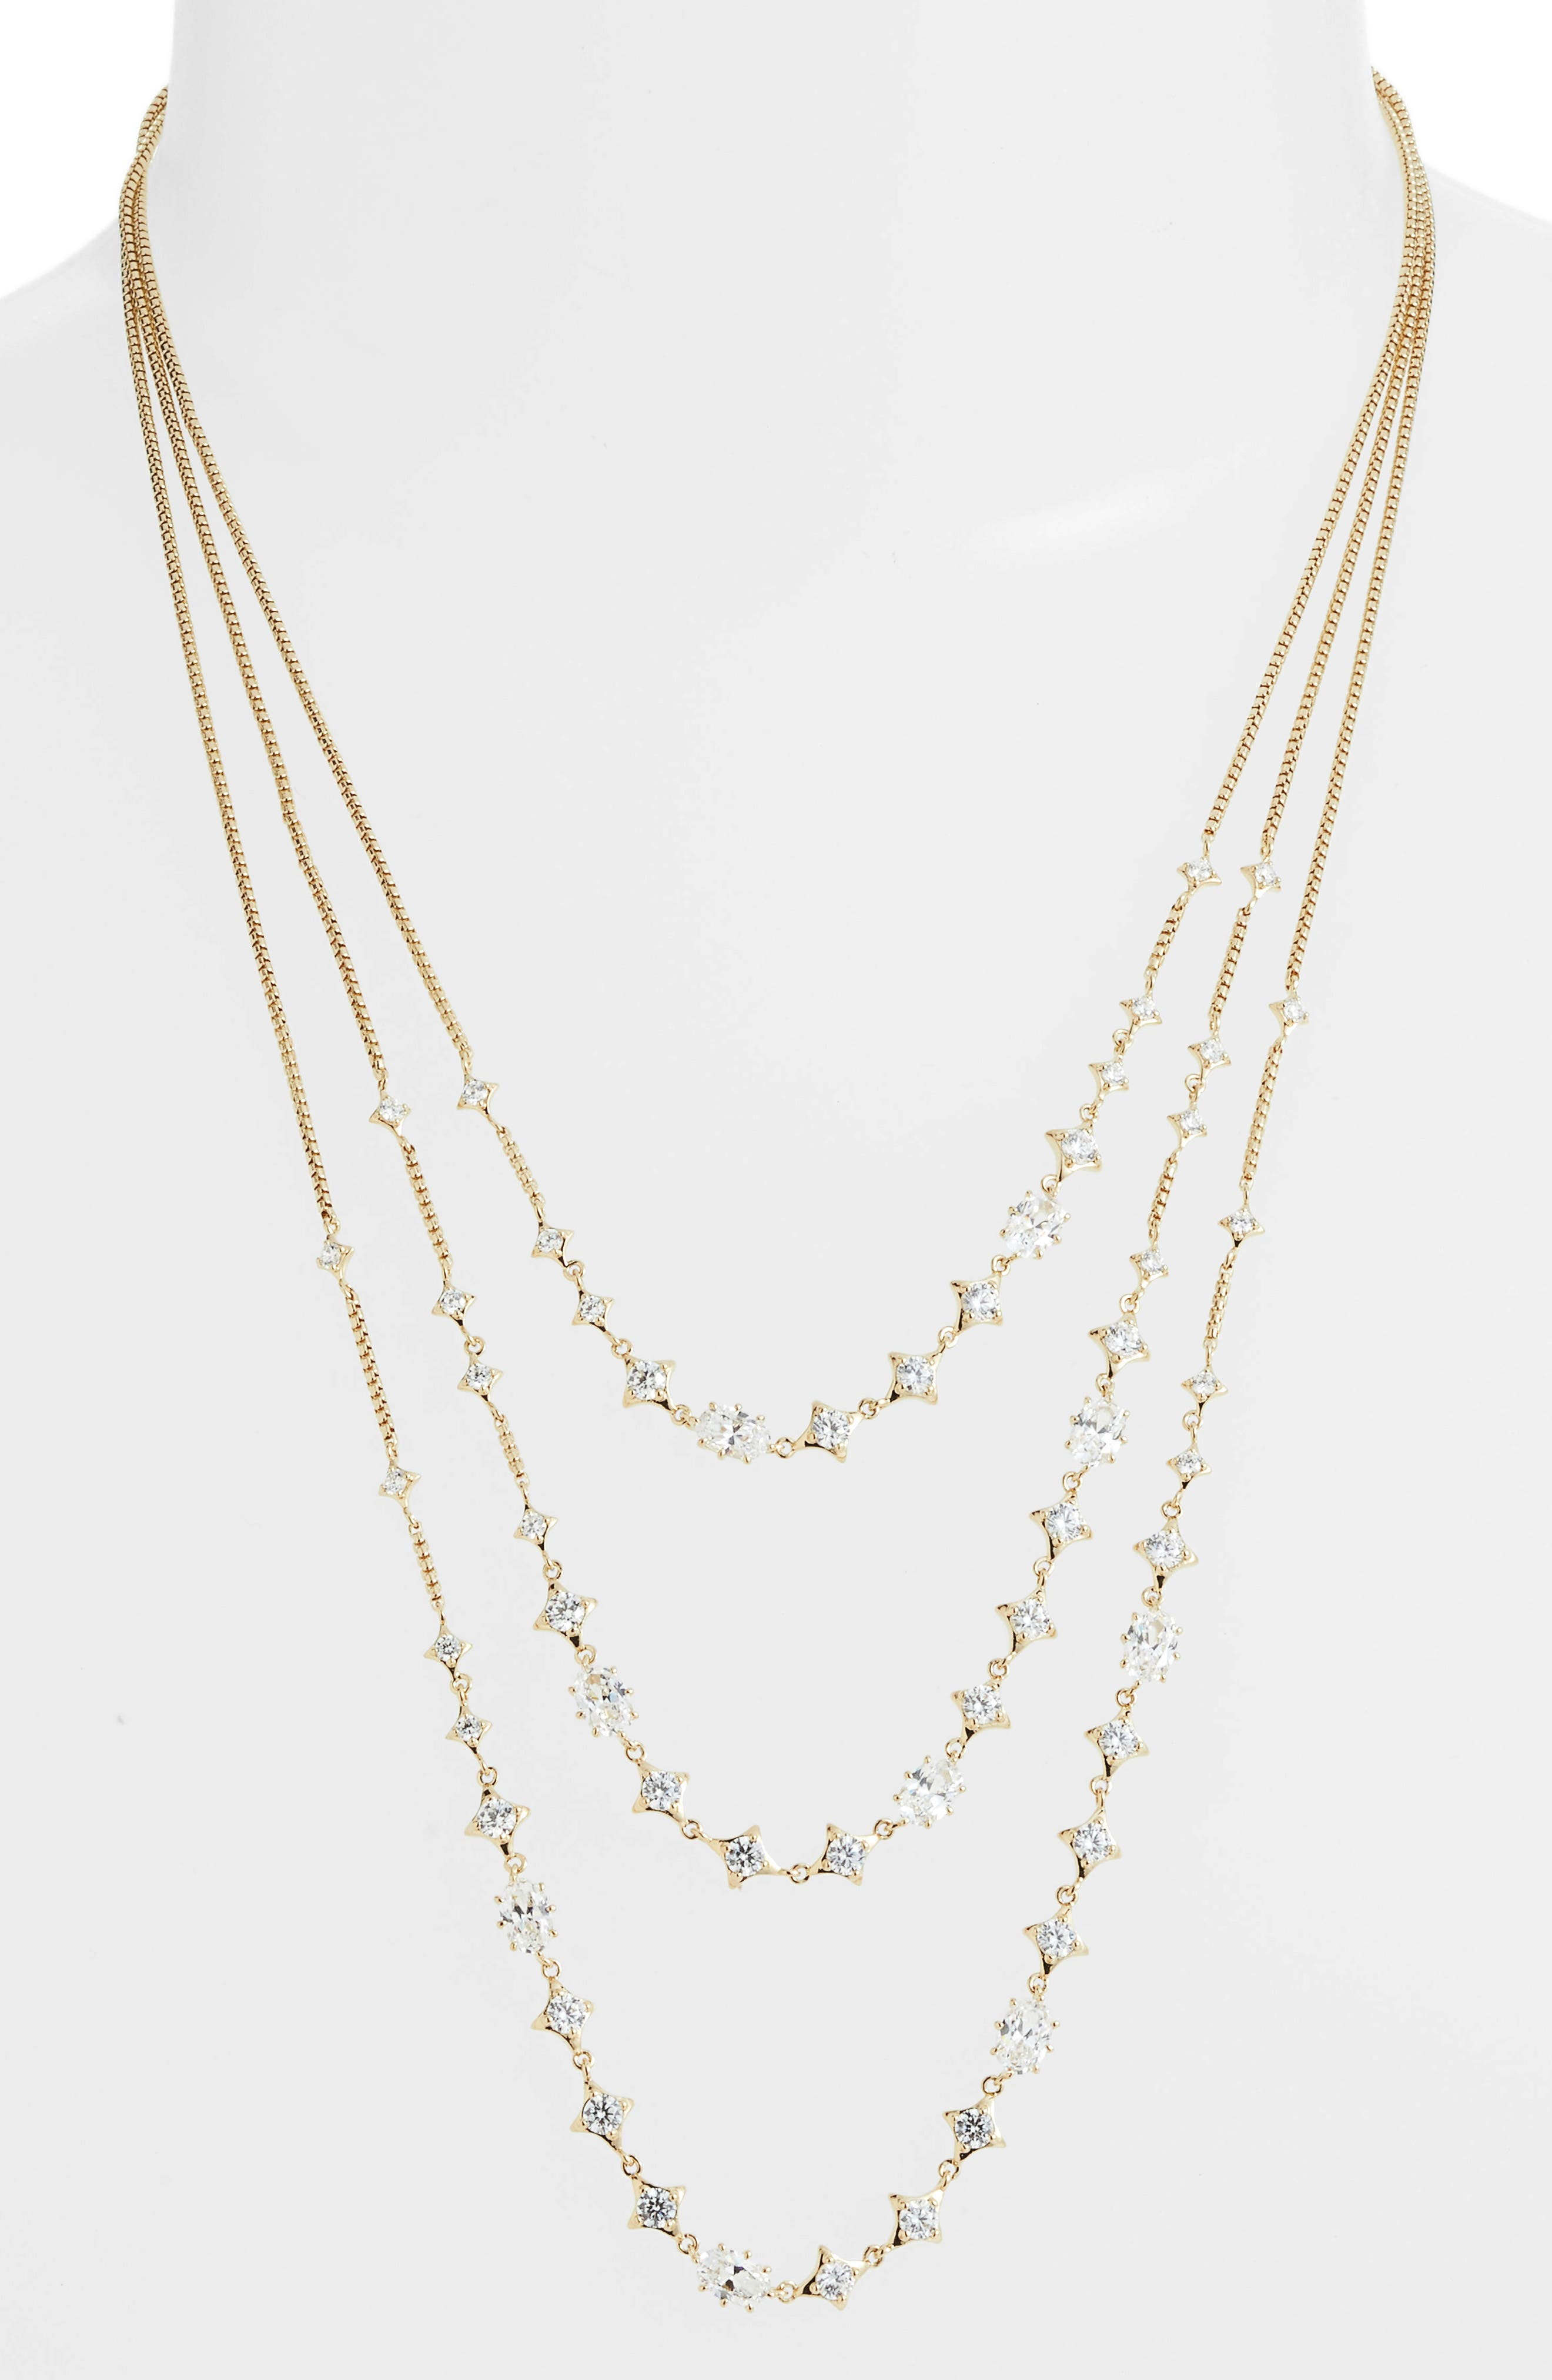 Boho Layered Necklace,                             Main thumbnail 1, color,                             GOLD/ CLEAR